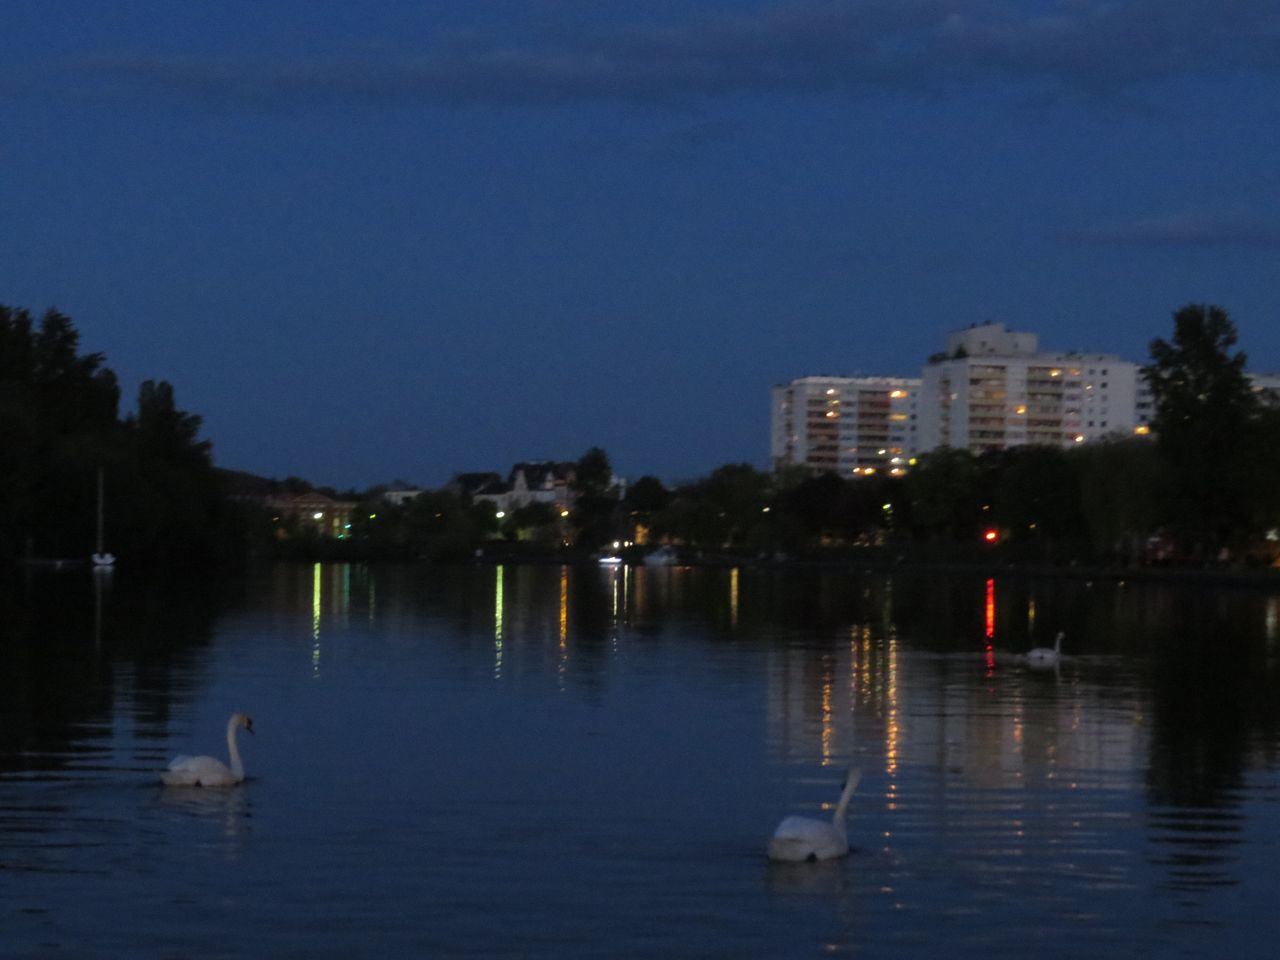 Animal Themes Animals In The Wild Bird Building Exterior Built Structure Evening Atmosphere Illuminated Main Night Lights Nightphotography Offenbach Am Main Reflection Relaxing Moments River Swans Swimming Tranquil Scene Tranquility Water Water Bird Water Reflections Waterfront